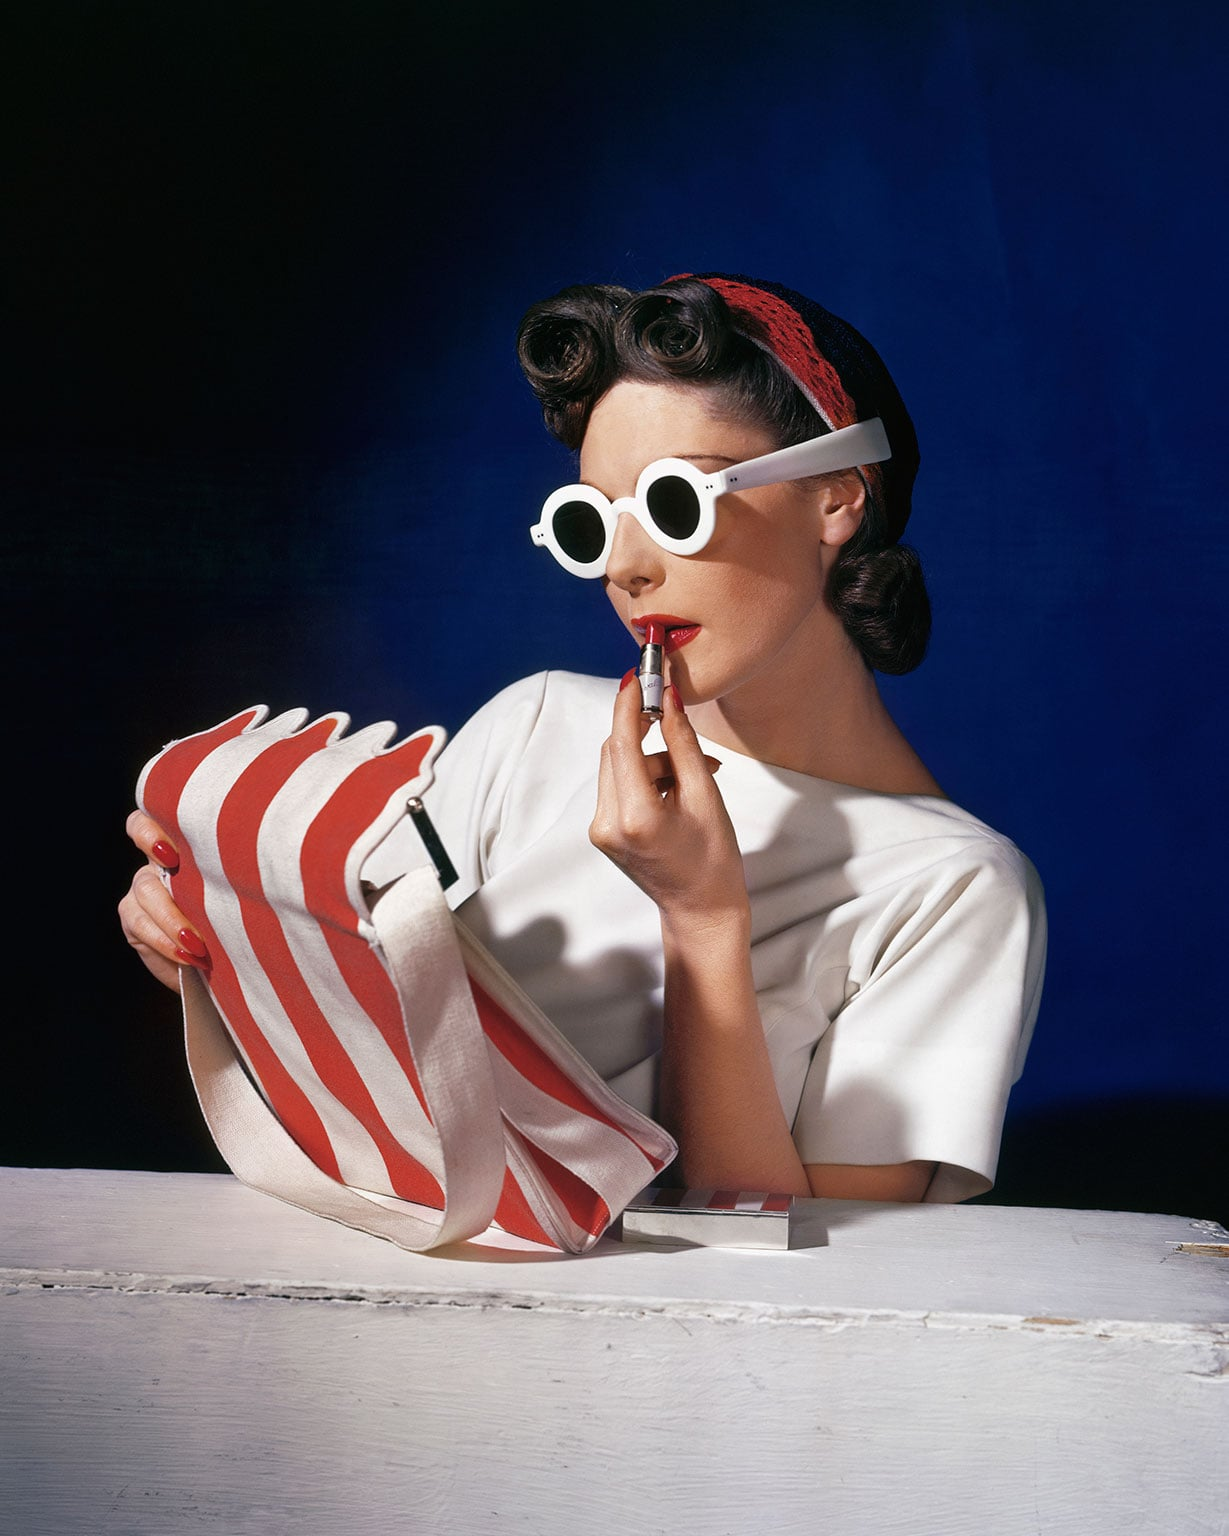 1. Horst: Photographer of Style, until 4 January 2015 - V and A (Victoria and Albert Museum), London. 50% off with National Art Pass